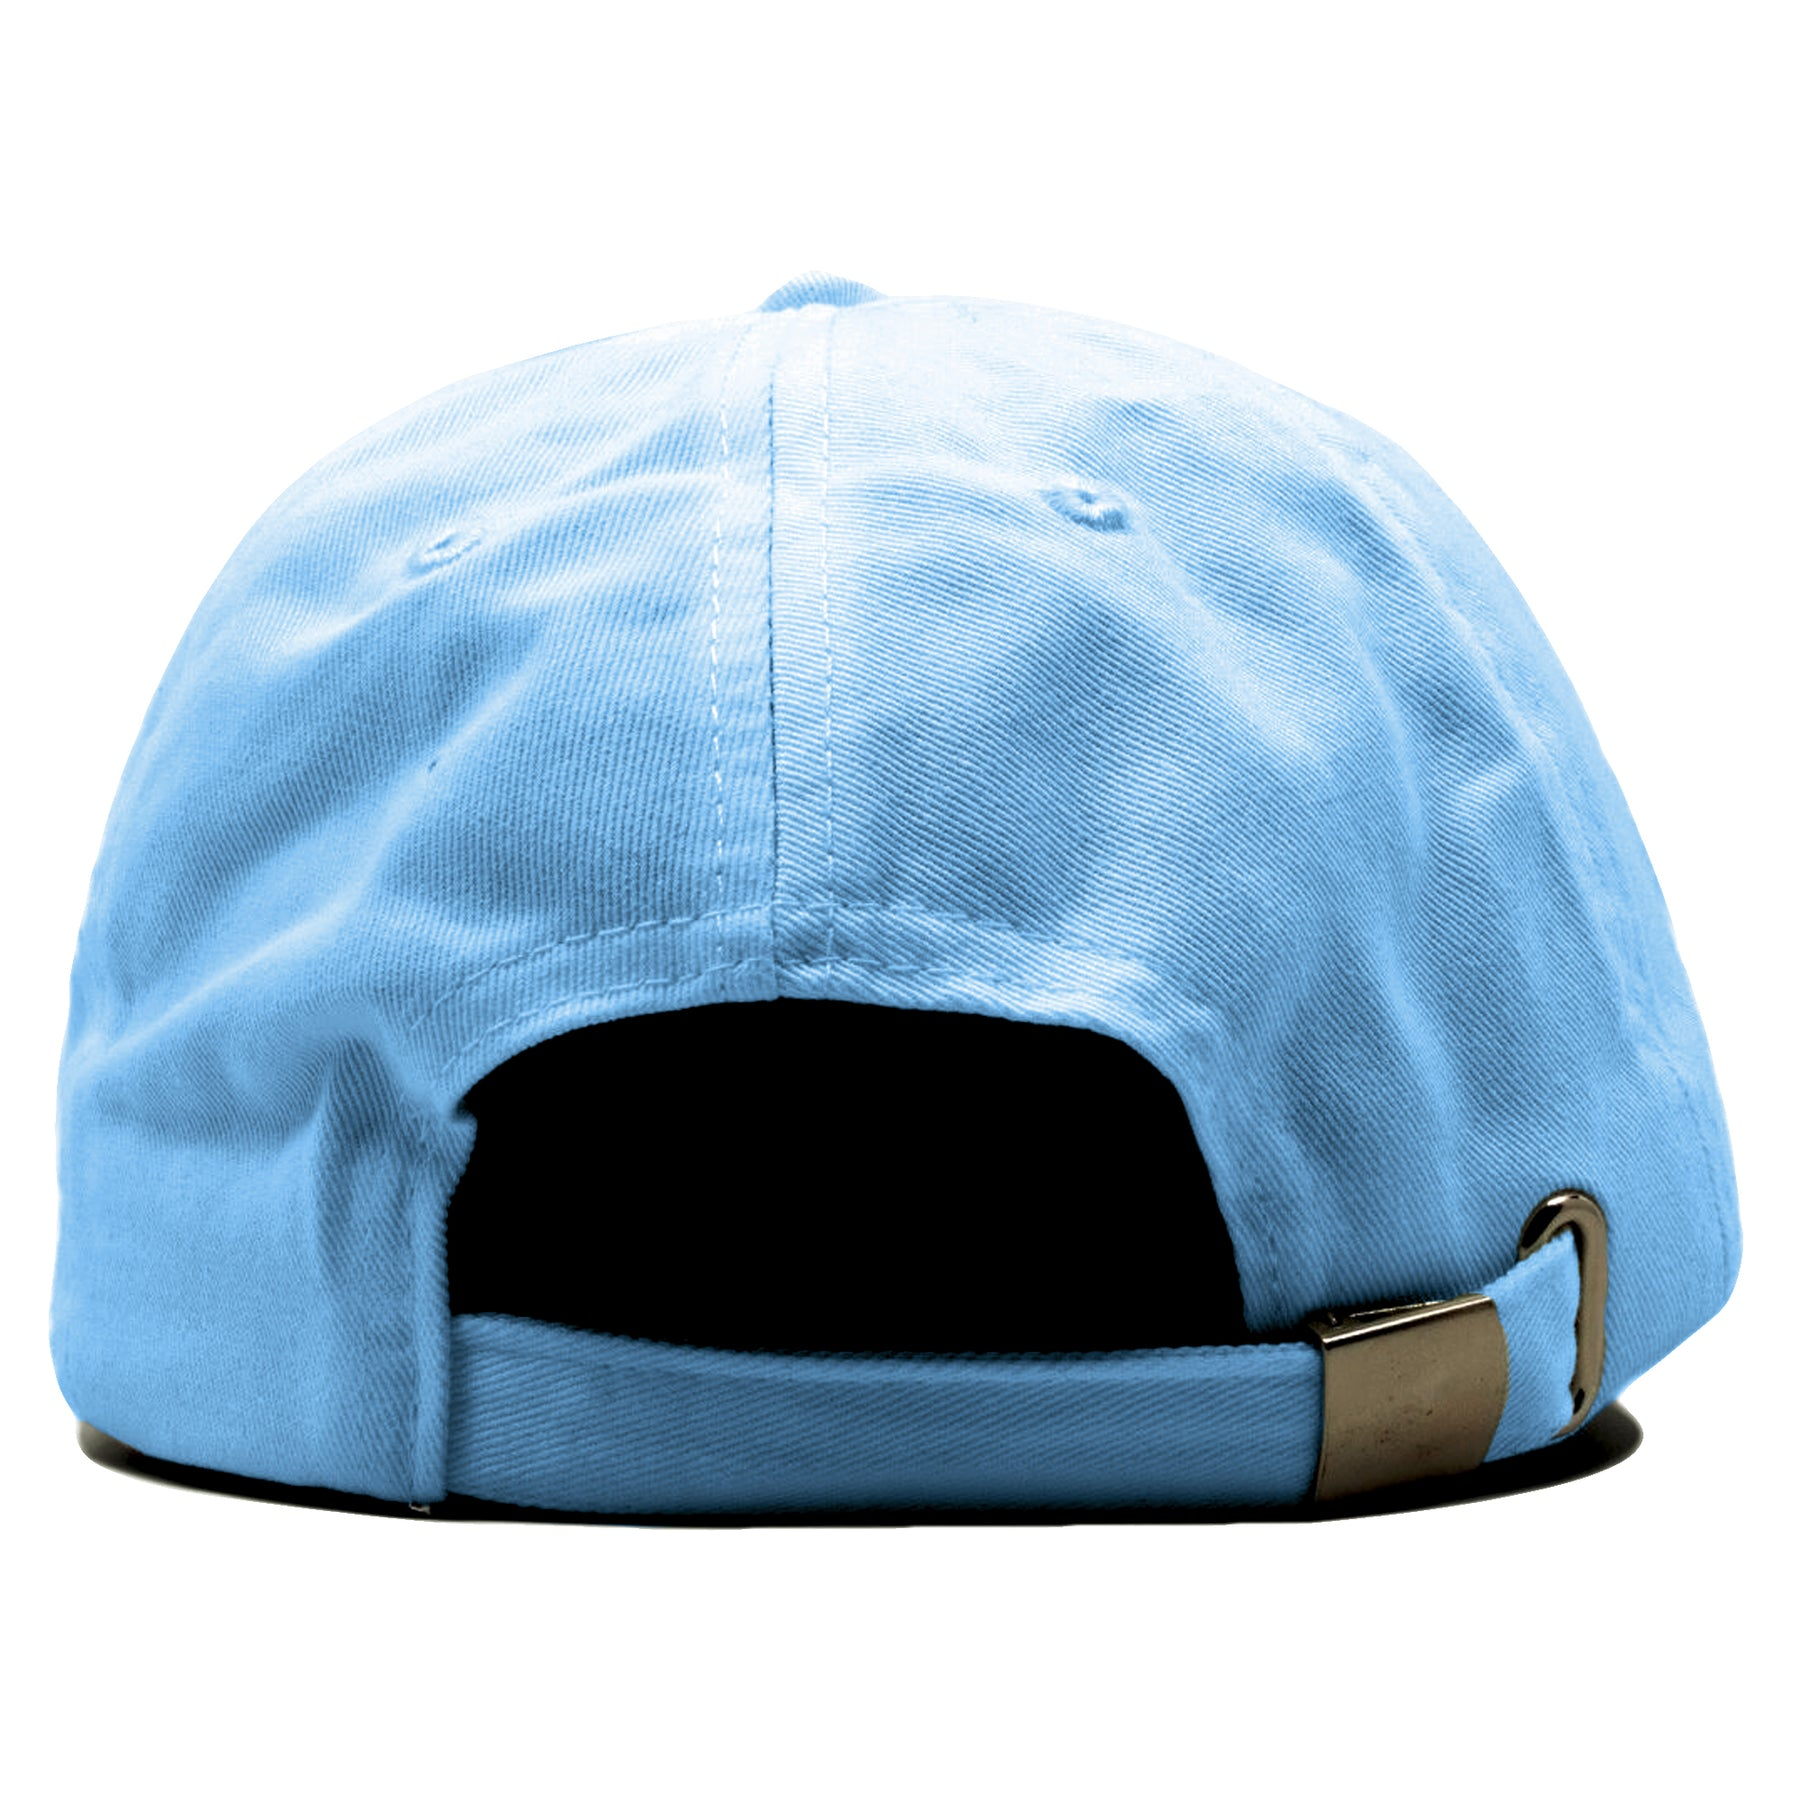 73c0833f3025ee ... On the back of the blank sky blue dad hat is a sky blue adjustable  strap ...